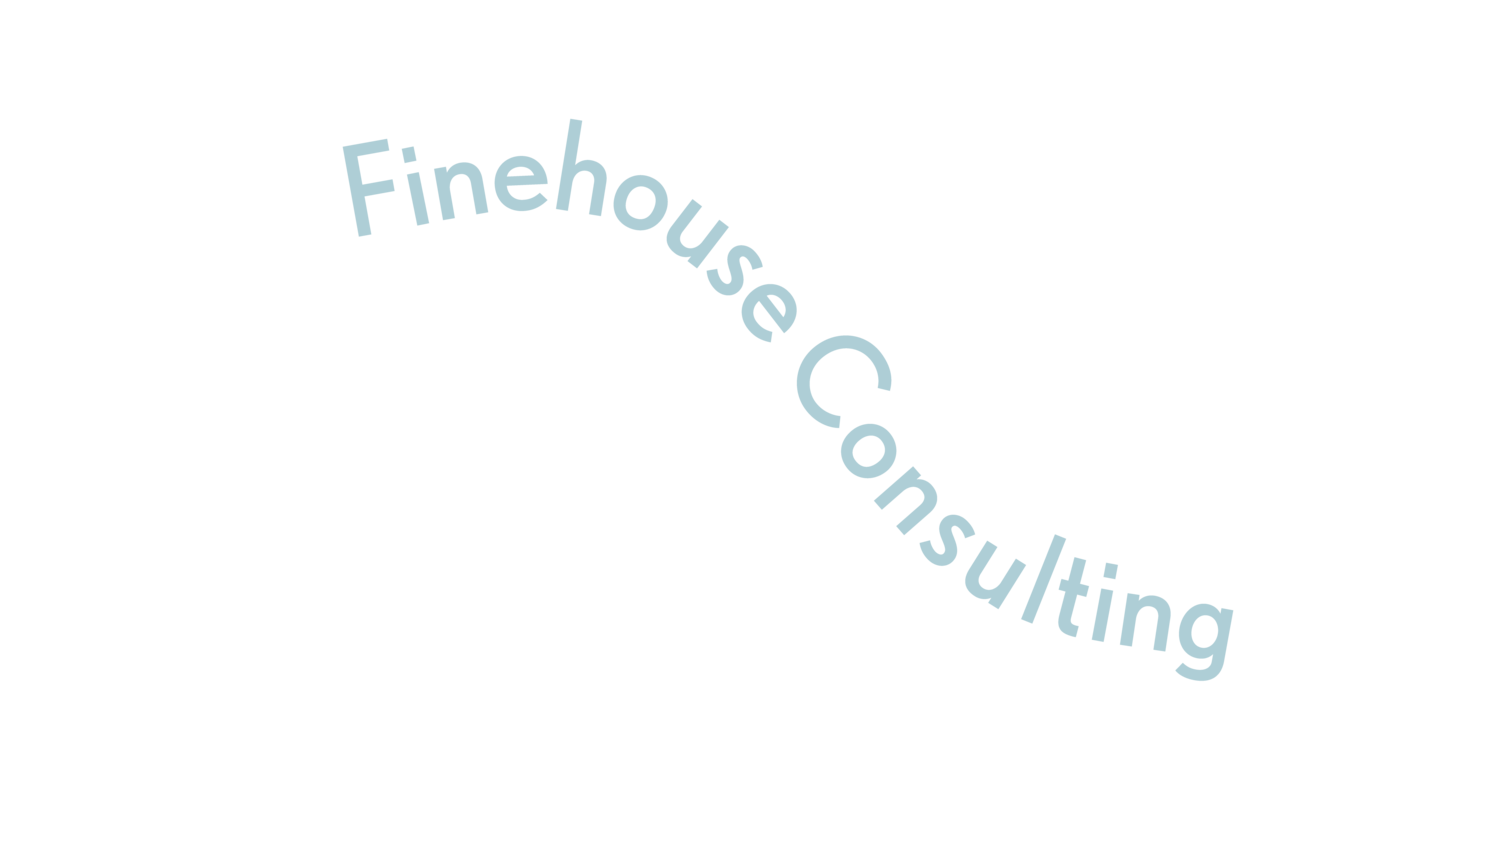 Finehouse Consulting